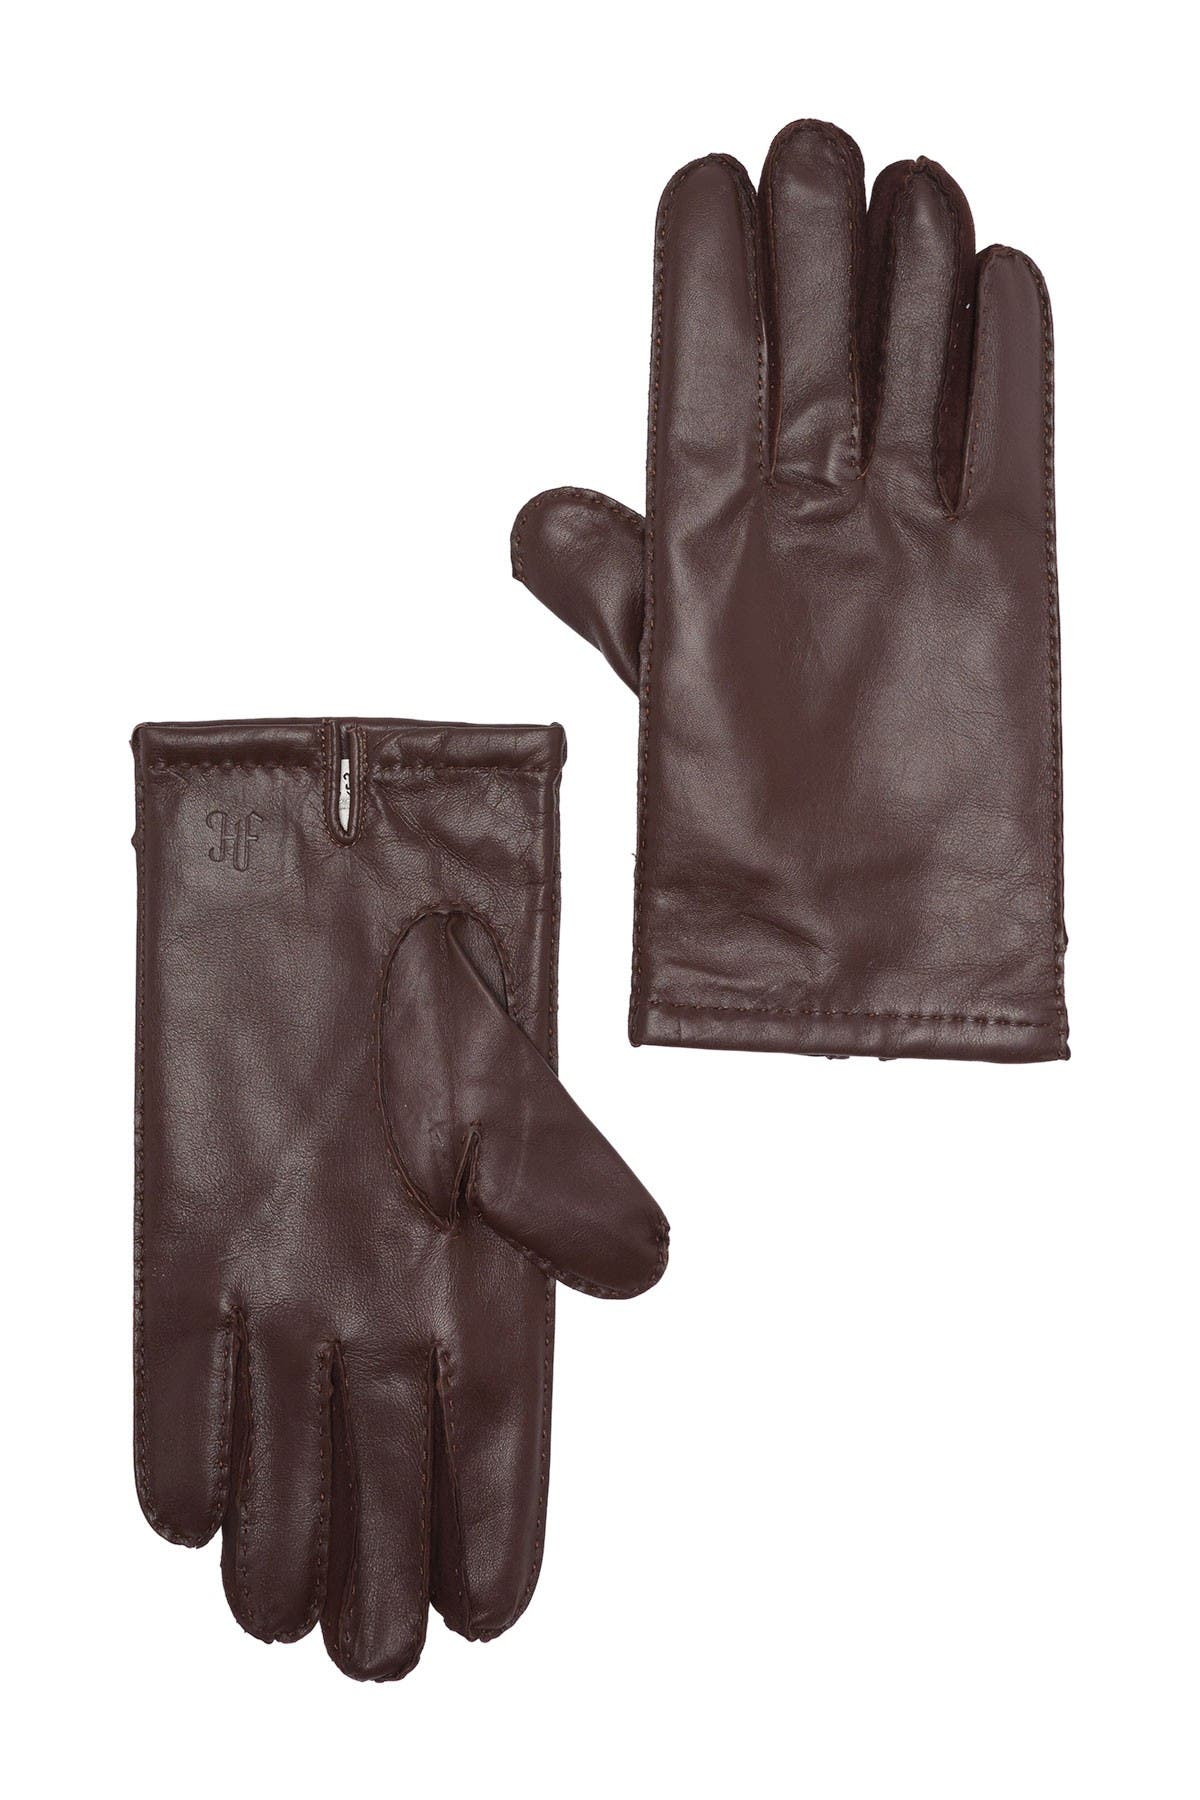 Image of Hickey Freeman Napa Leather Hand Stitched Gloves